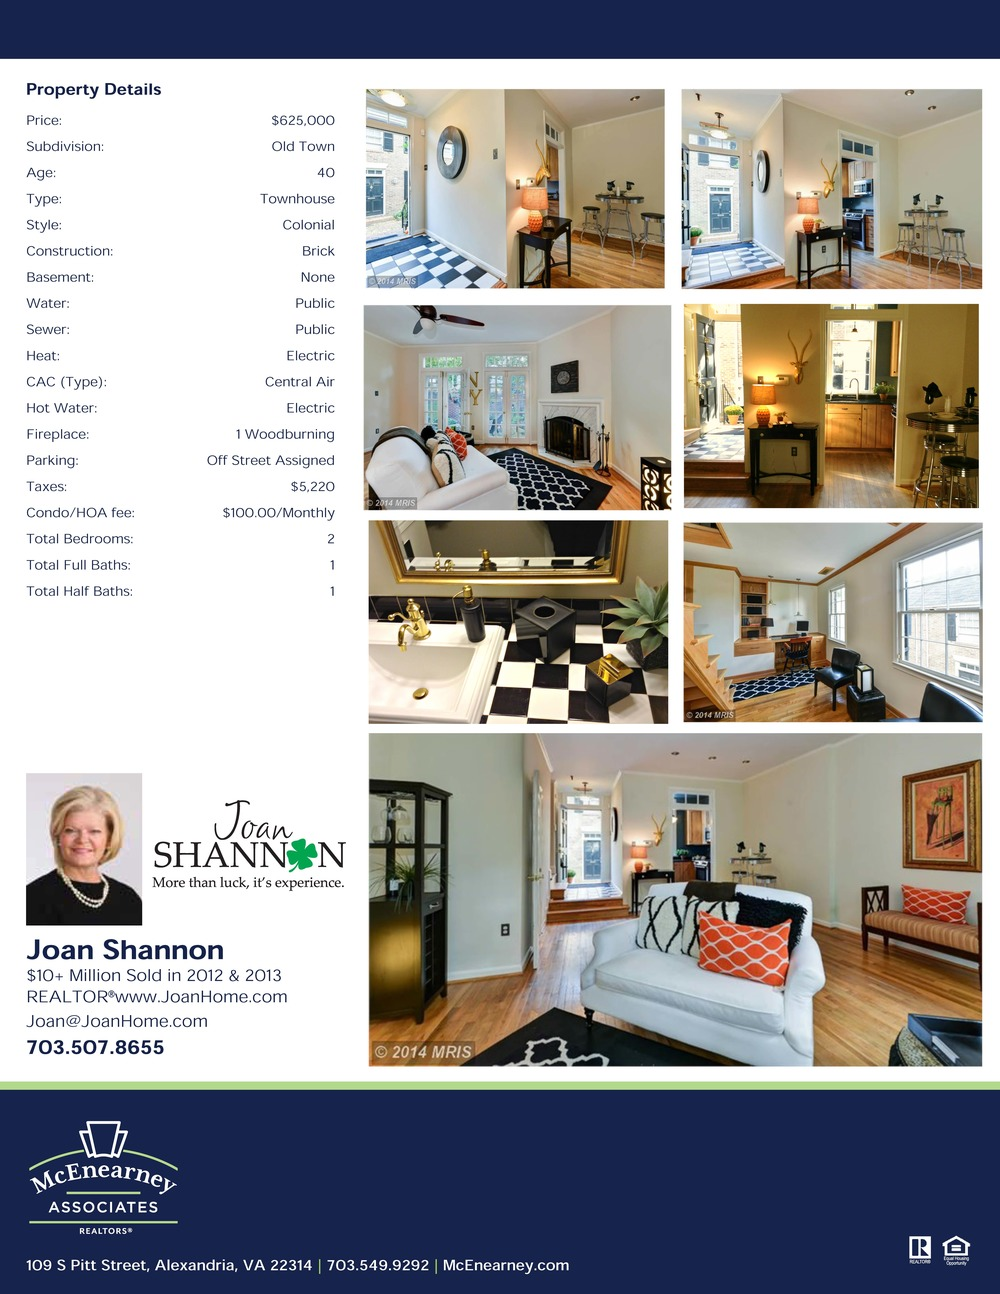 213 SOUTH NION STREET BROCHURE pics only.jpg